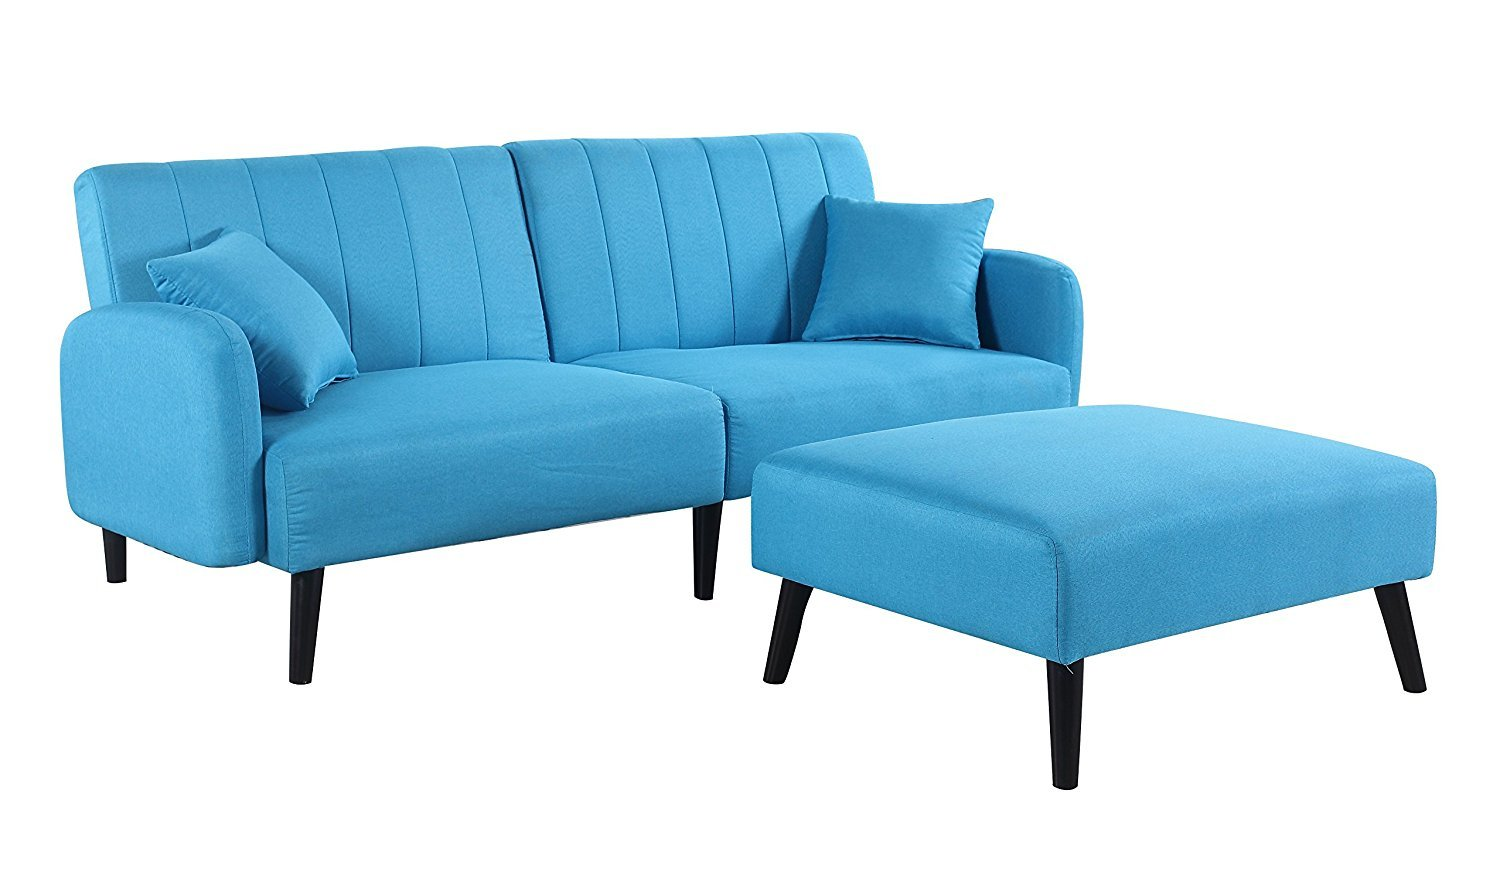 Small Sofa with Chaise - Home Furniture Design